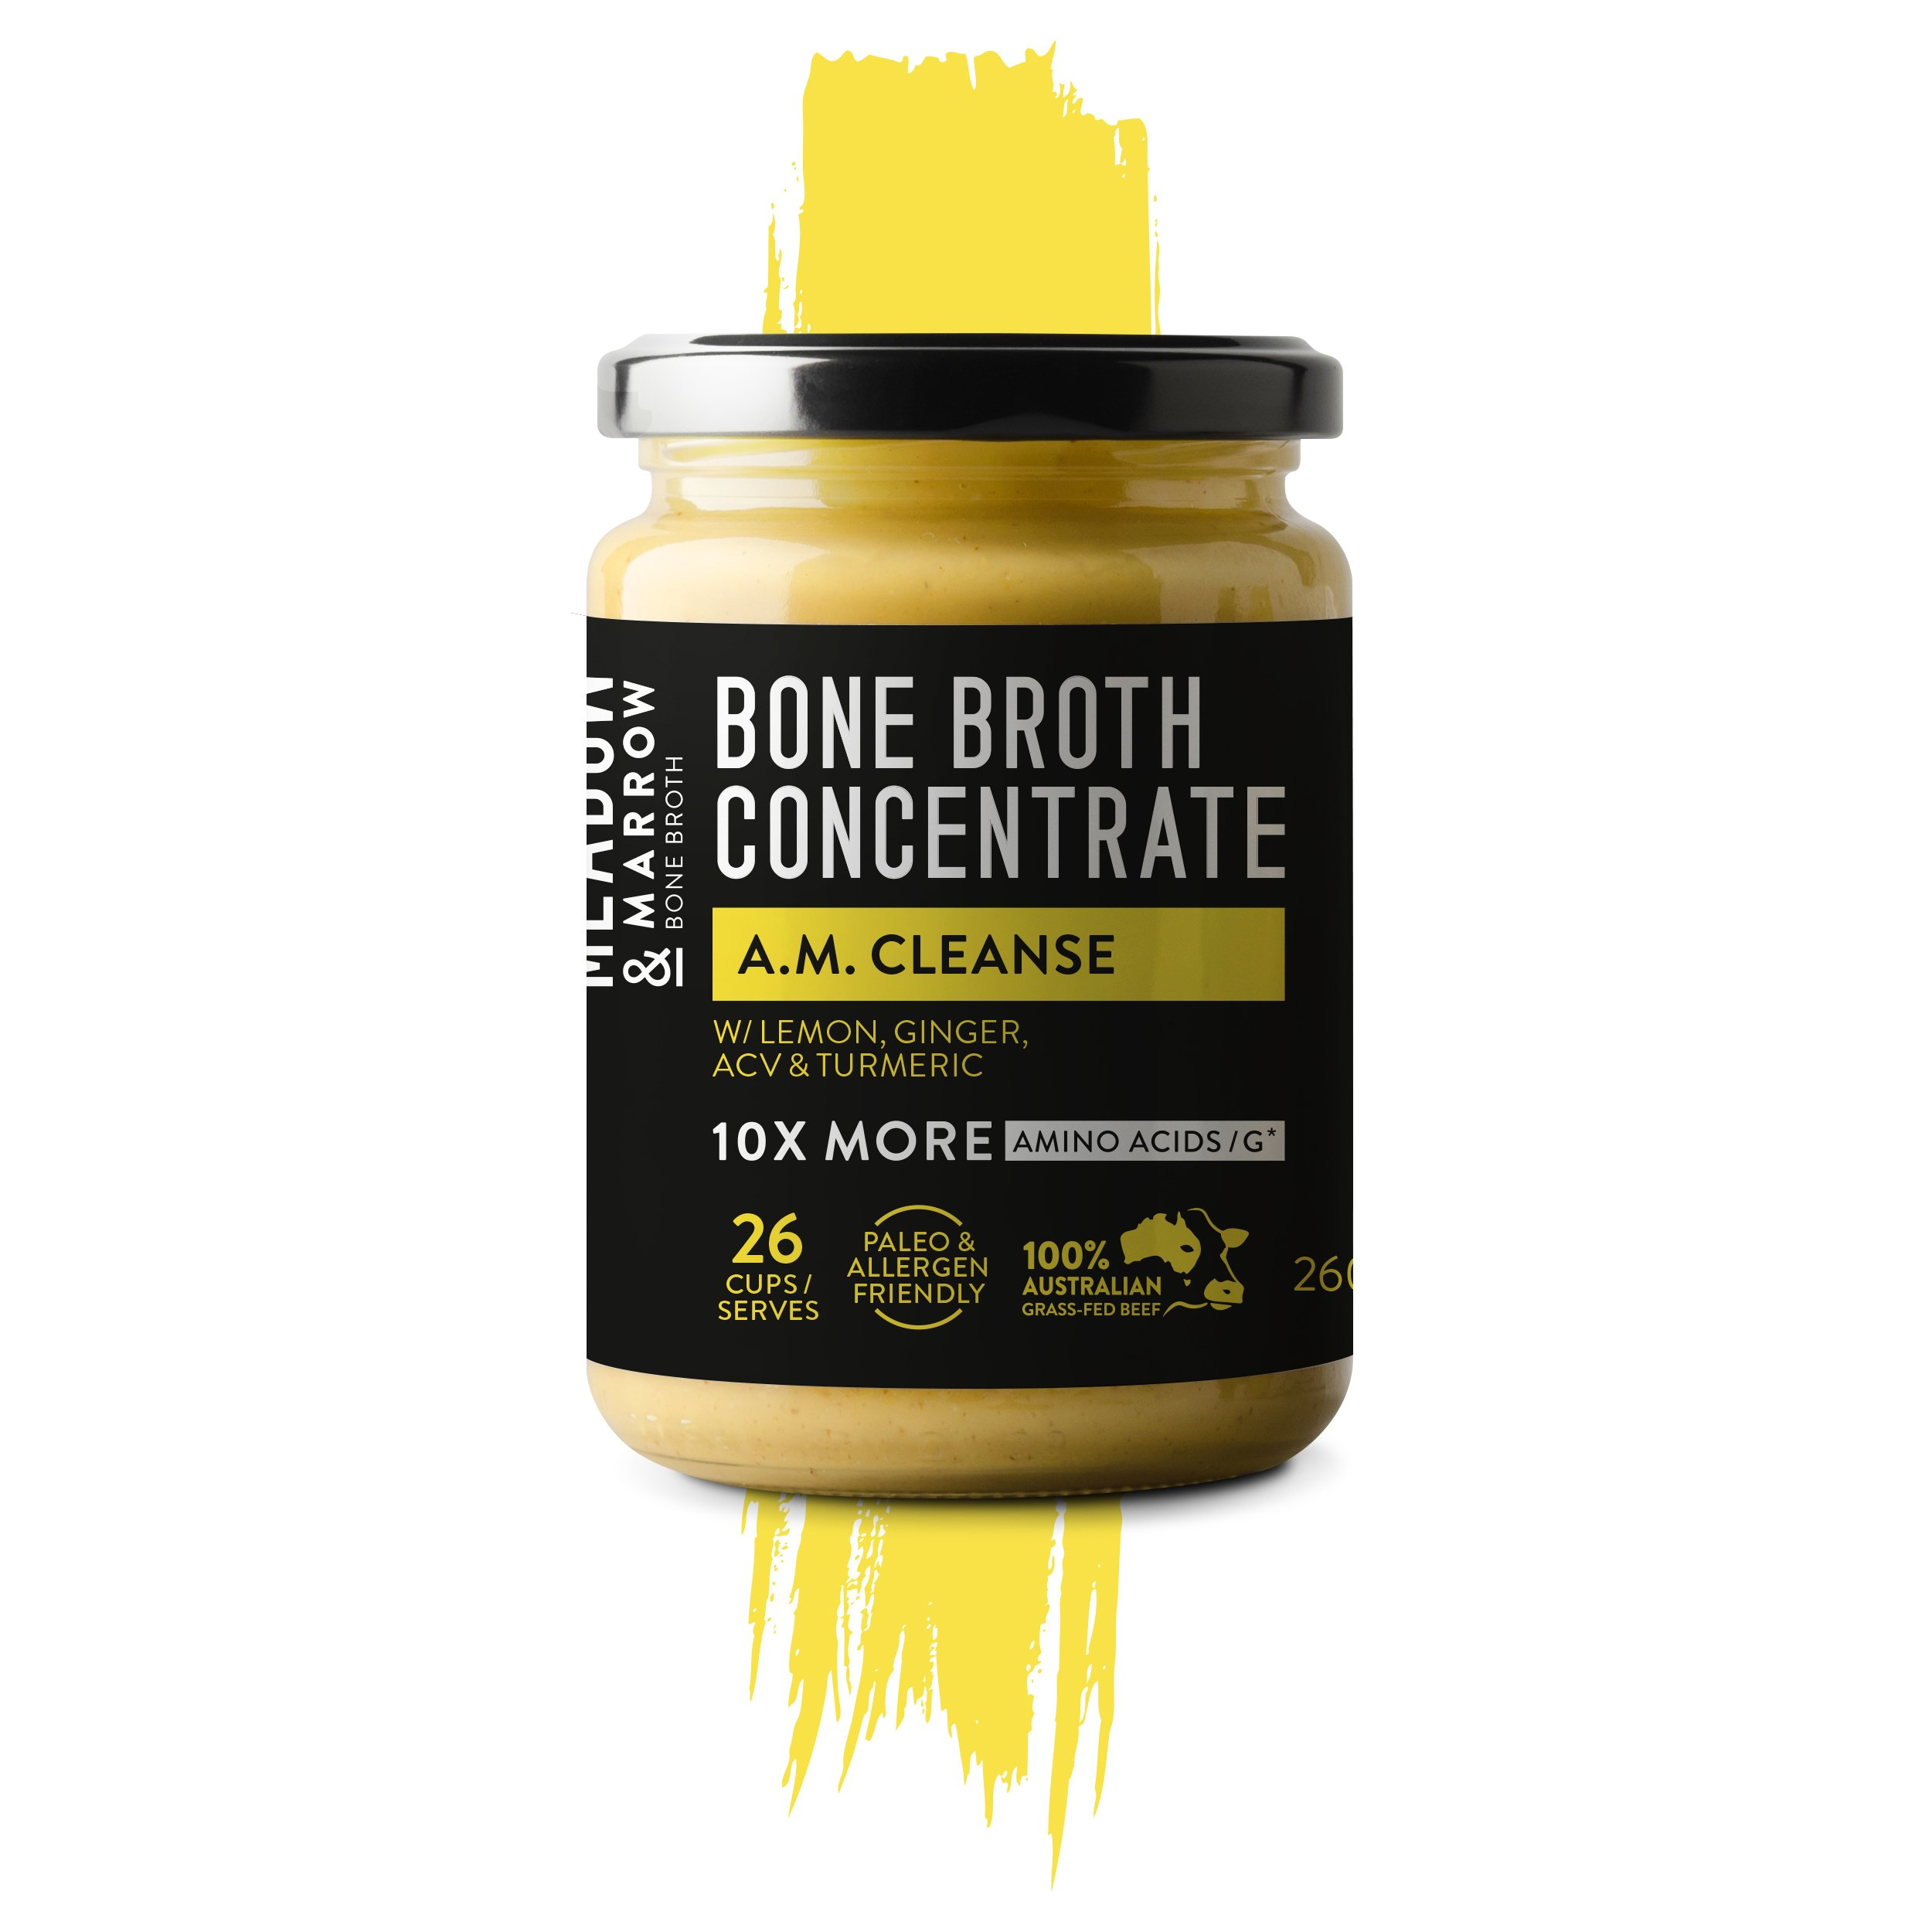 AM Cleanse - Performance Bone Broth Concentrate Range - 9.17oz - Cleanse: Detoxify: Boost Immune System with Superfoods - Lemon, ginger, organic apple cider vinegar & turmeric